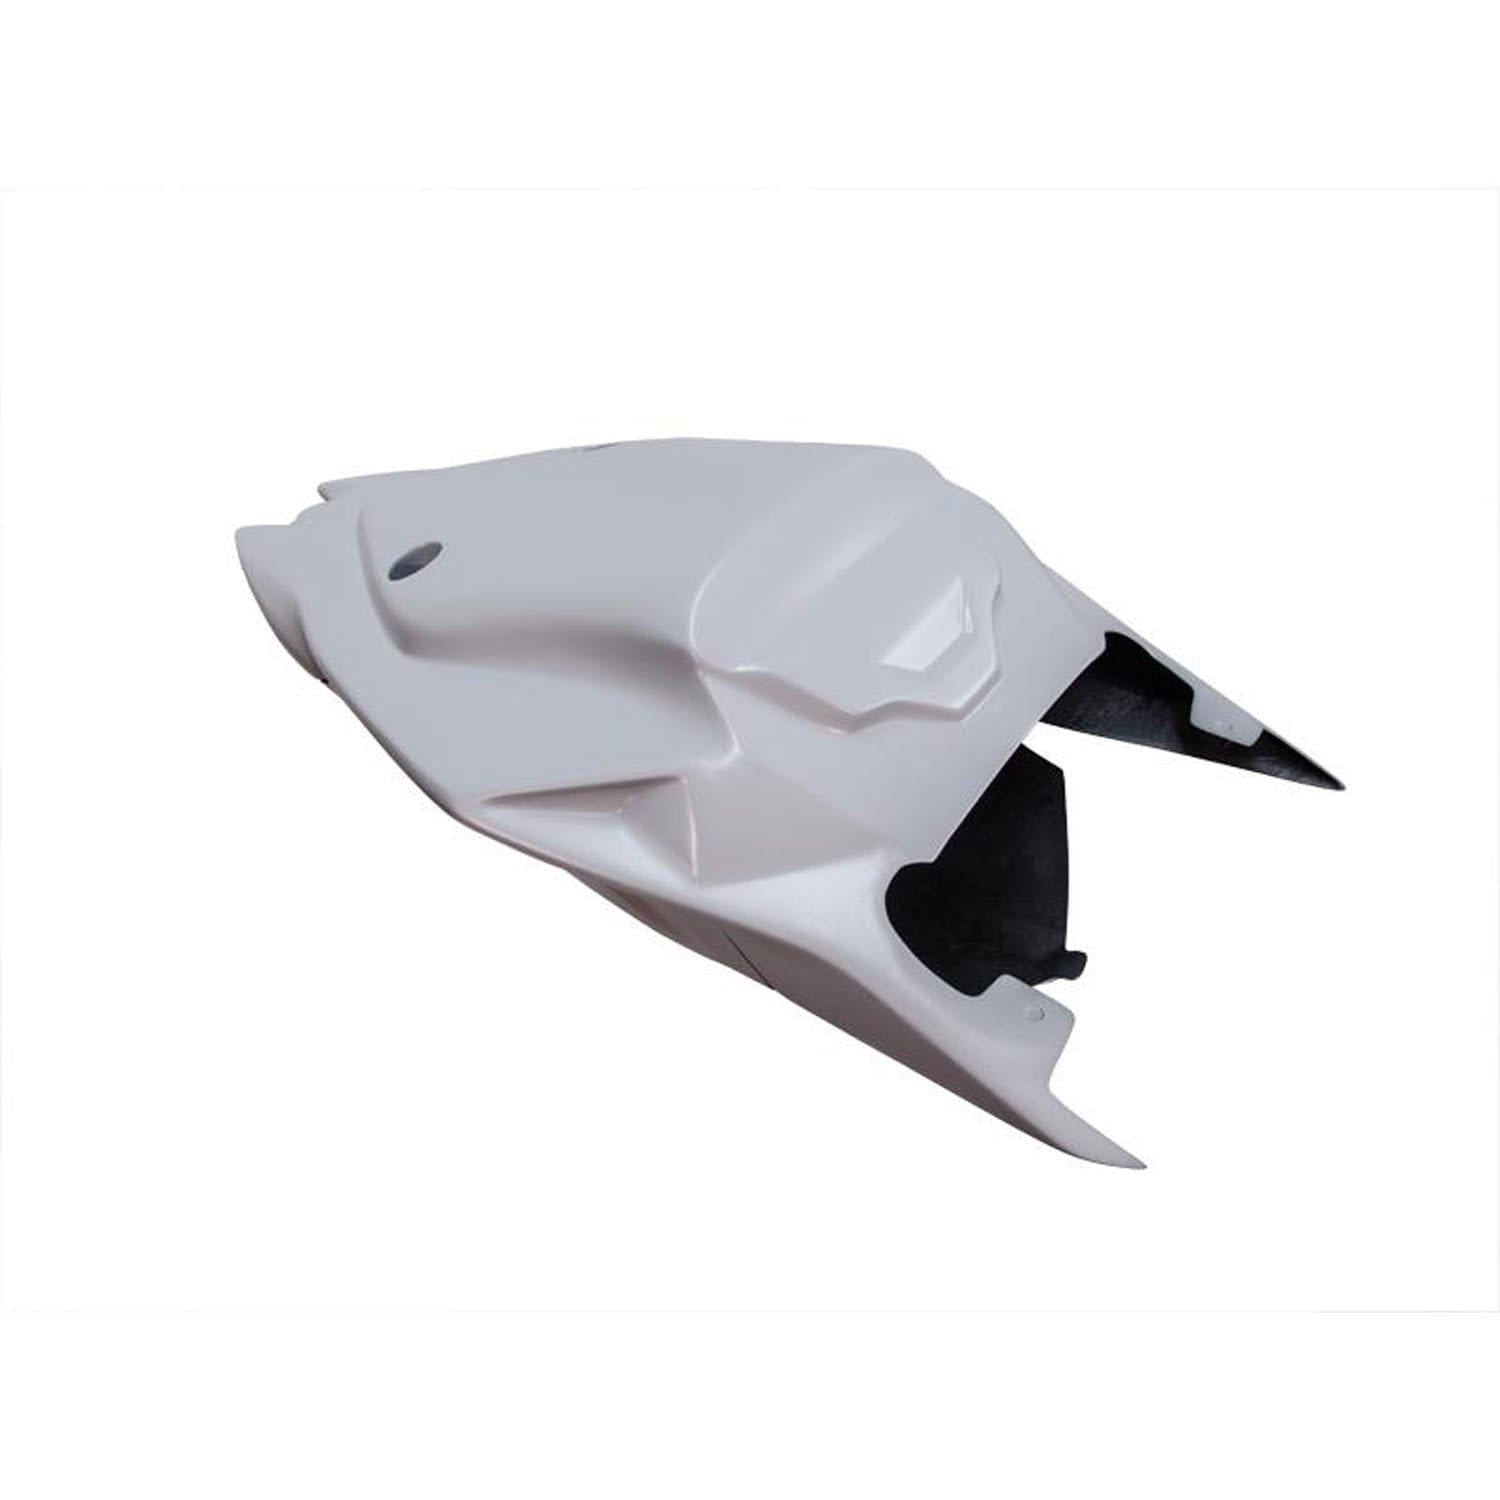 BMW S1000RR '15-17 Supersport Tail - Pro Series - Woodcraft Technologies - Motorcycle Parts